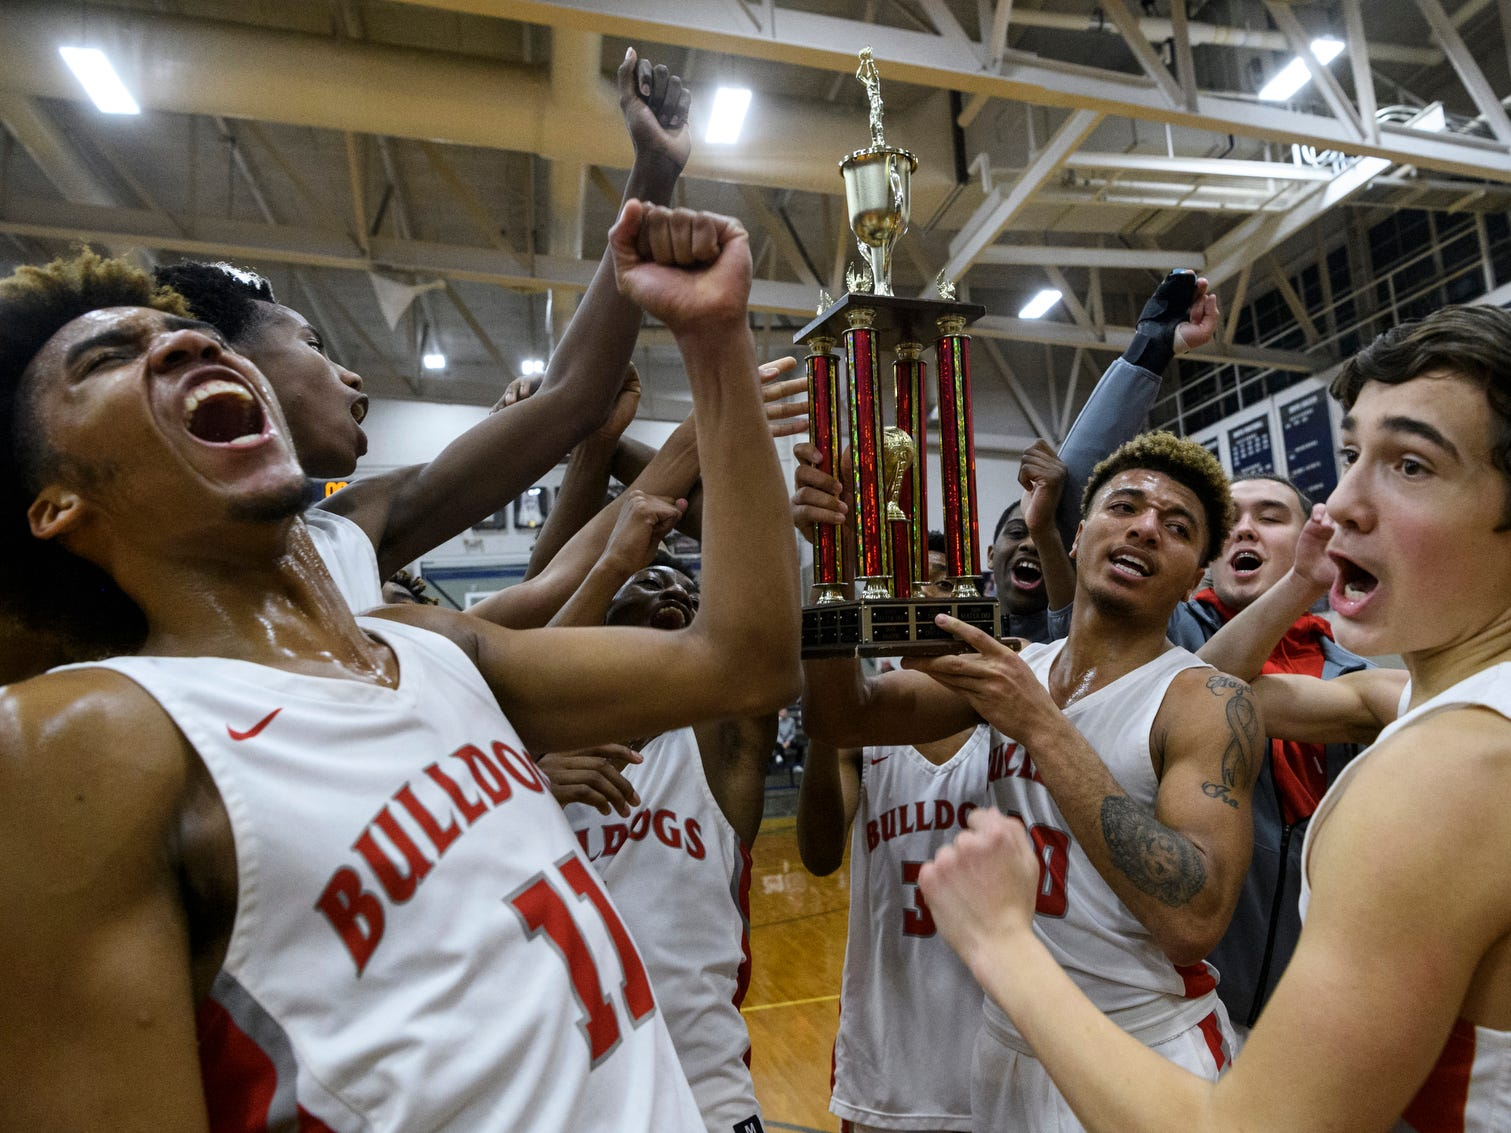 The Bosse Bulldogs won the SIAC tournament championship for the second straight season by defeating the Memorial Tigers 82-61 at Reitz High School in Evansville, Ind., Saturday, Jan. 12, 2019.